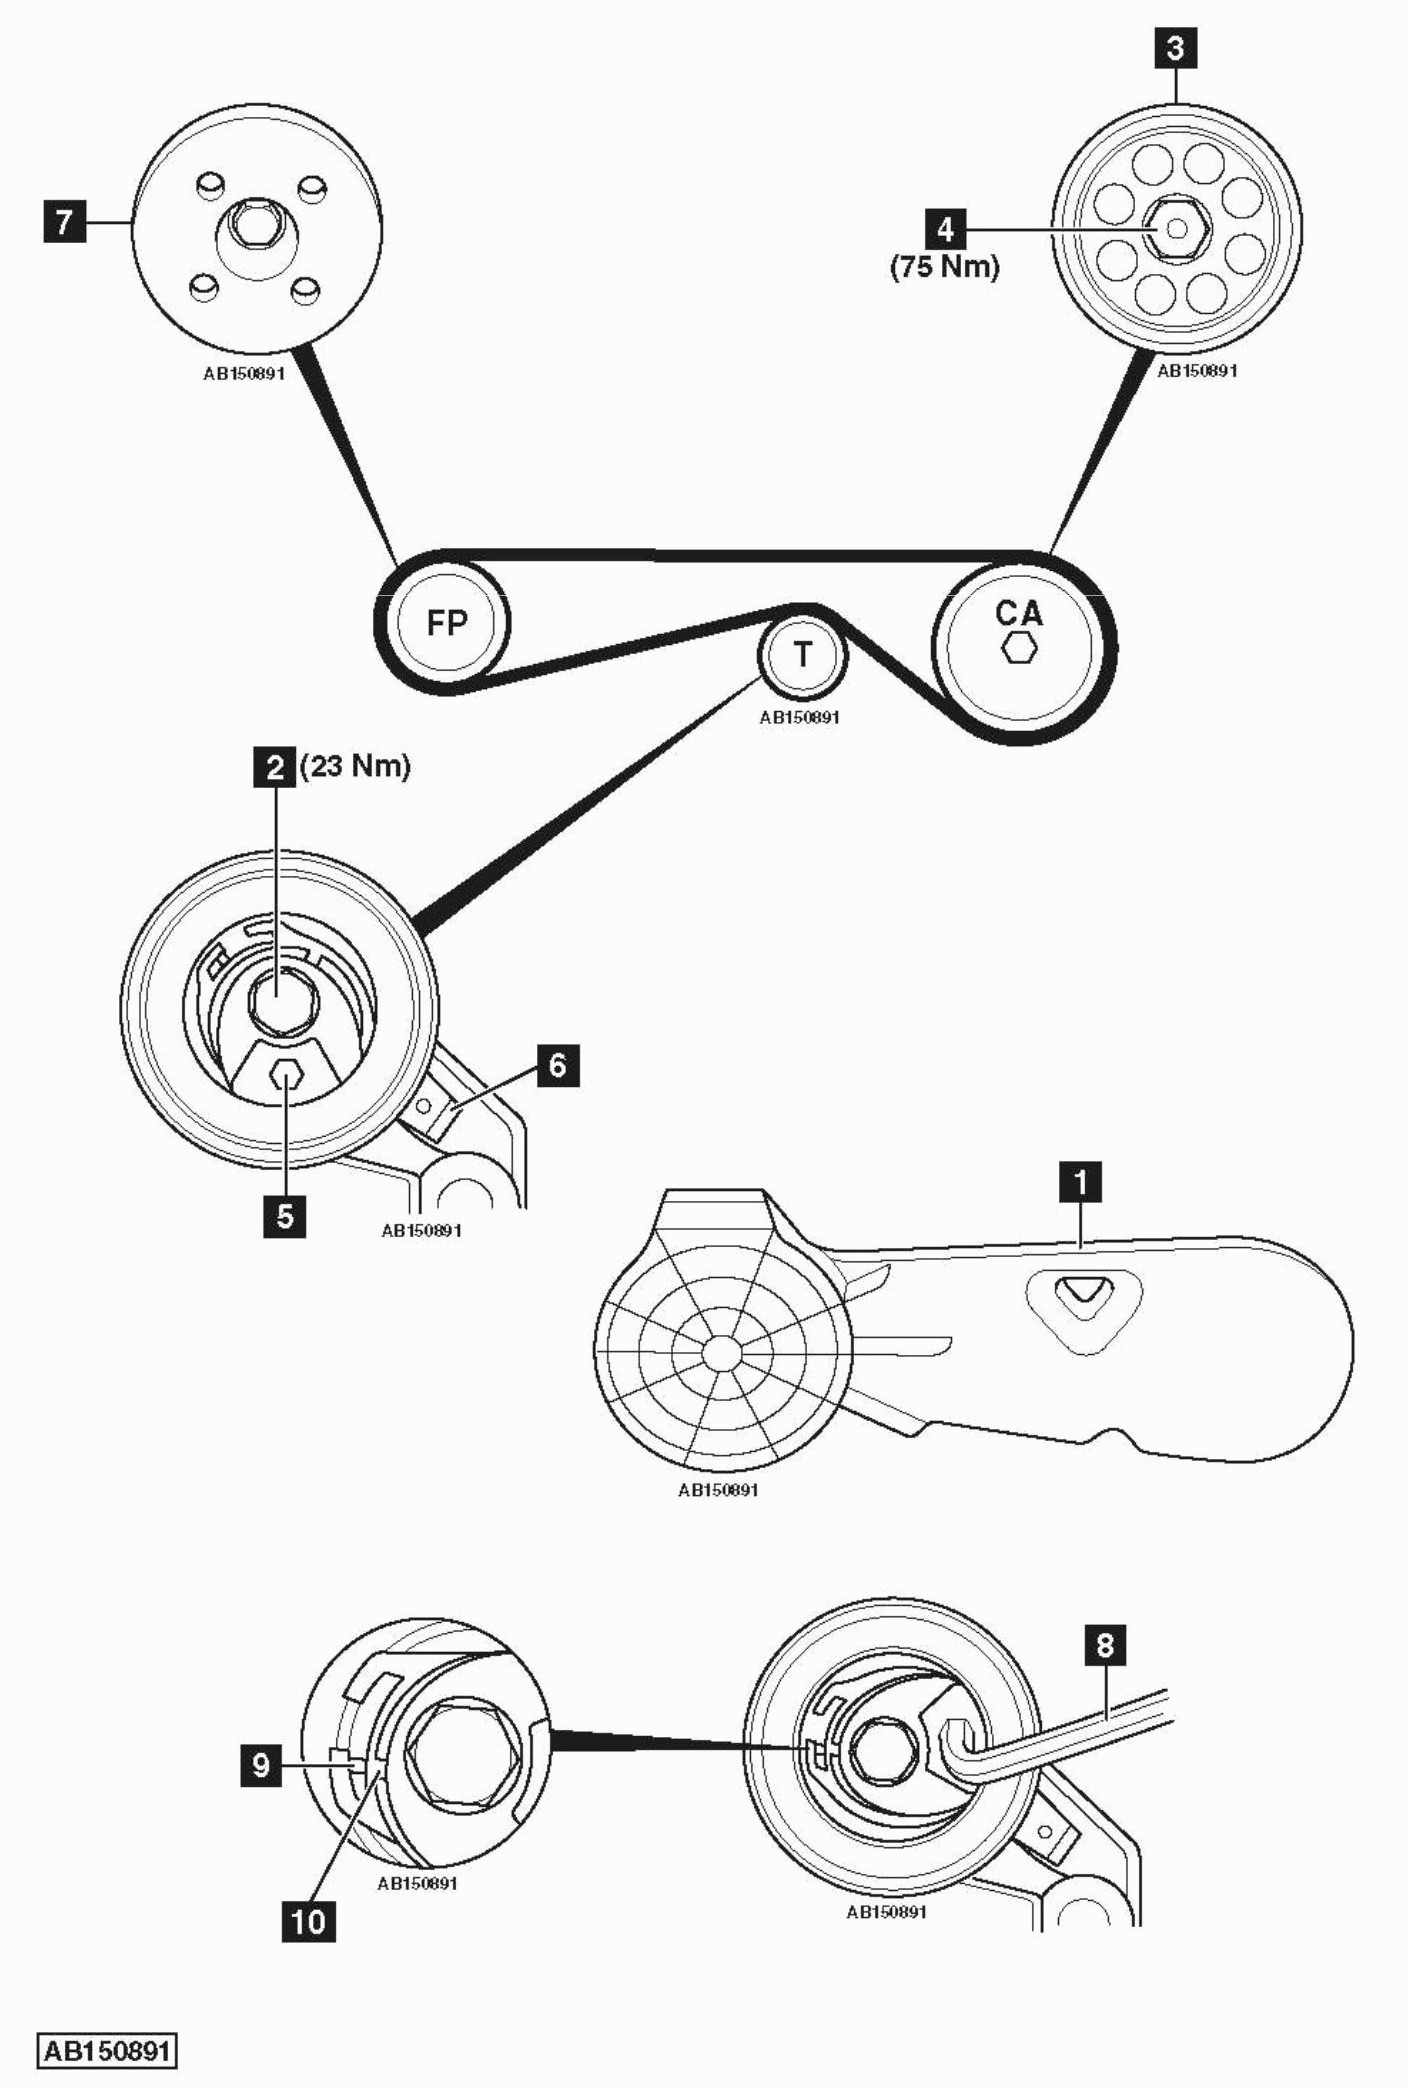 Diagram Of Car Gearbox Bmw Belt Best original Parts for E71 X6 35ix N54 Sac Engine Belt Of Diagram Of Car Gearbox Hyundai Body Parts Diagram